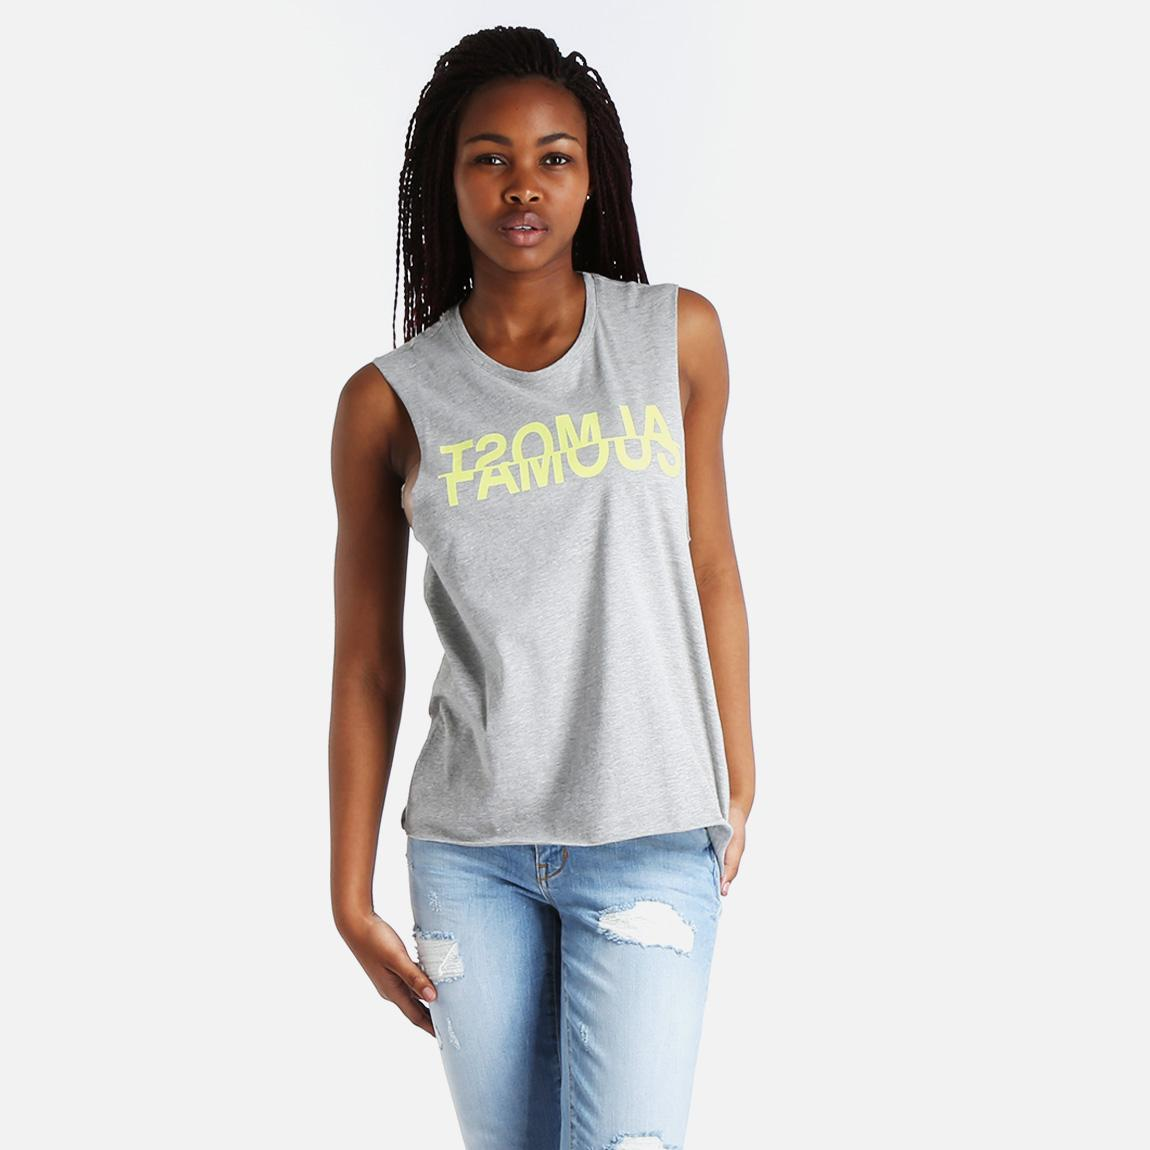 Dora Tank Top Light Grey Melange Vero Moda T Shirts